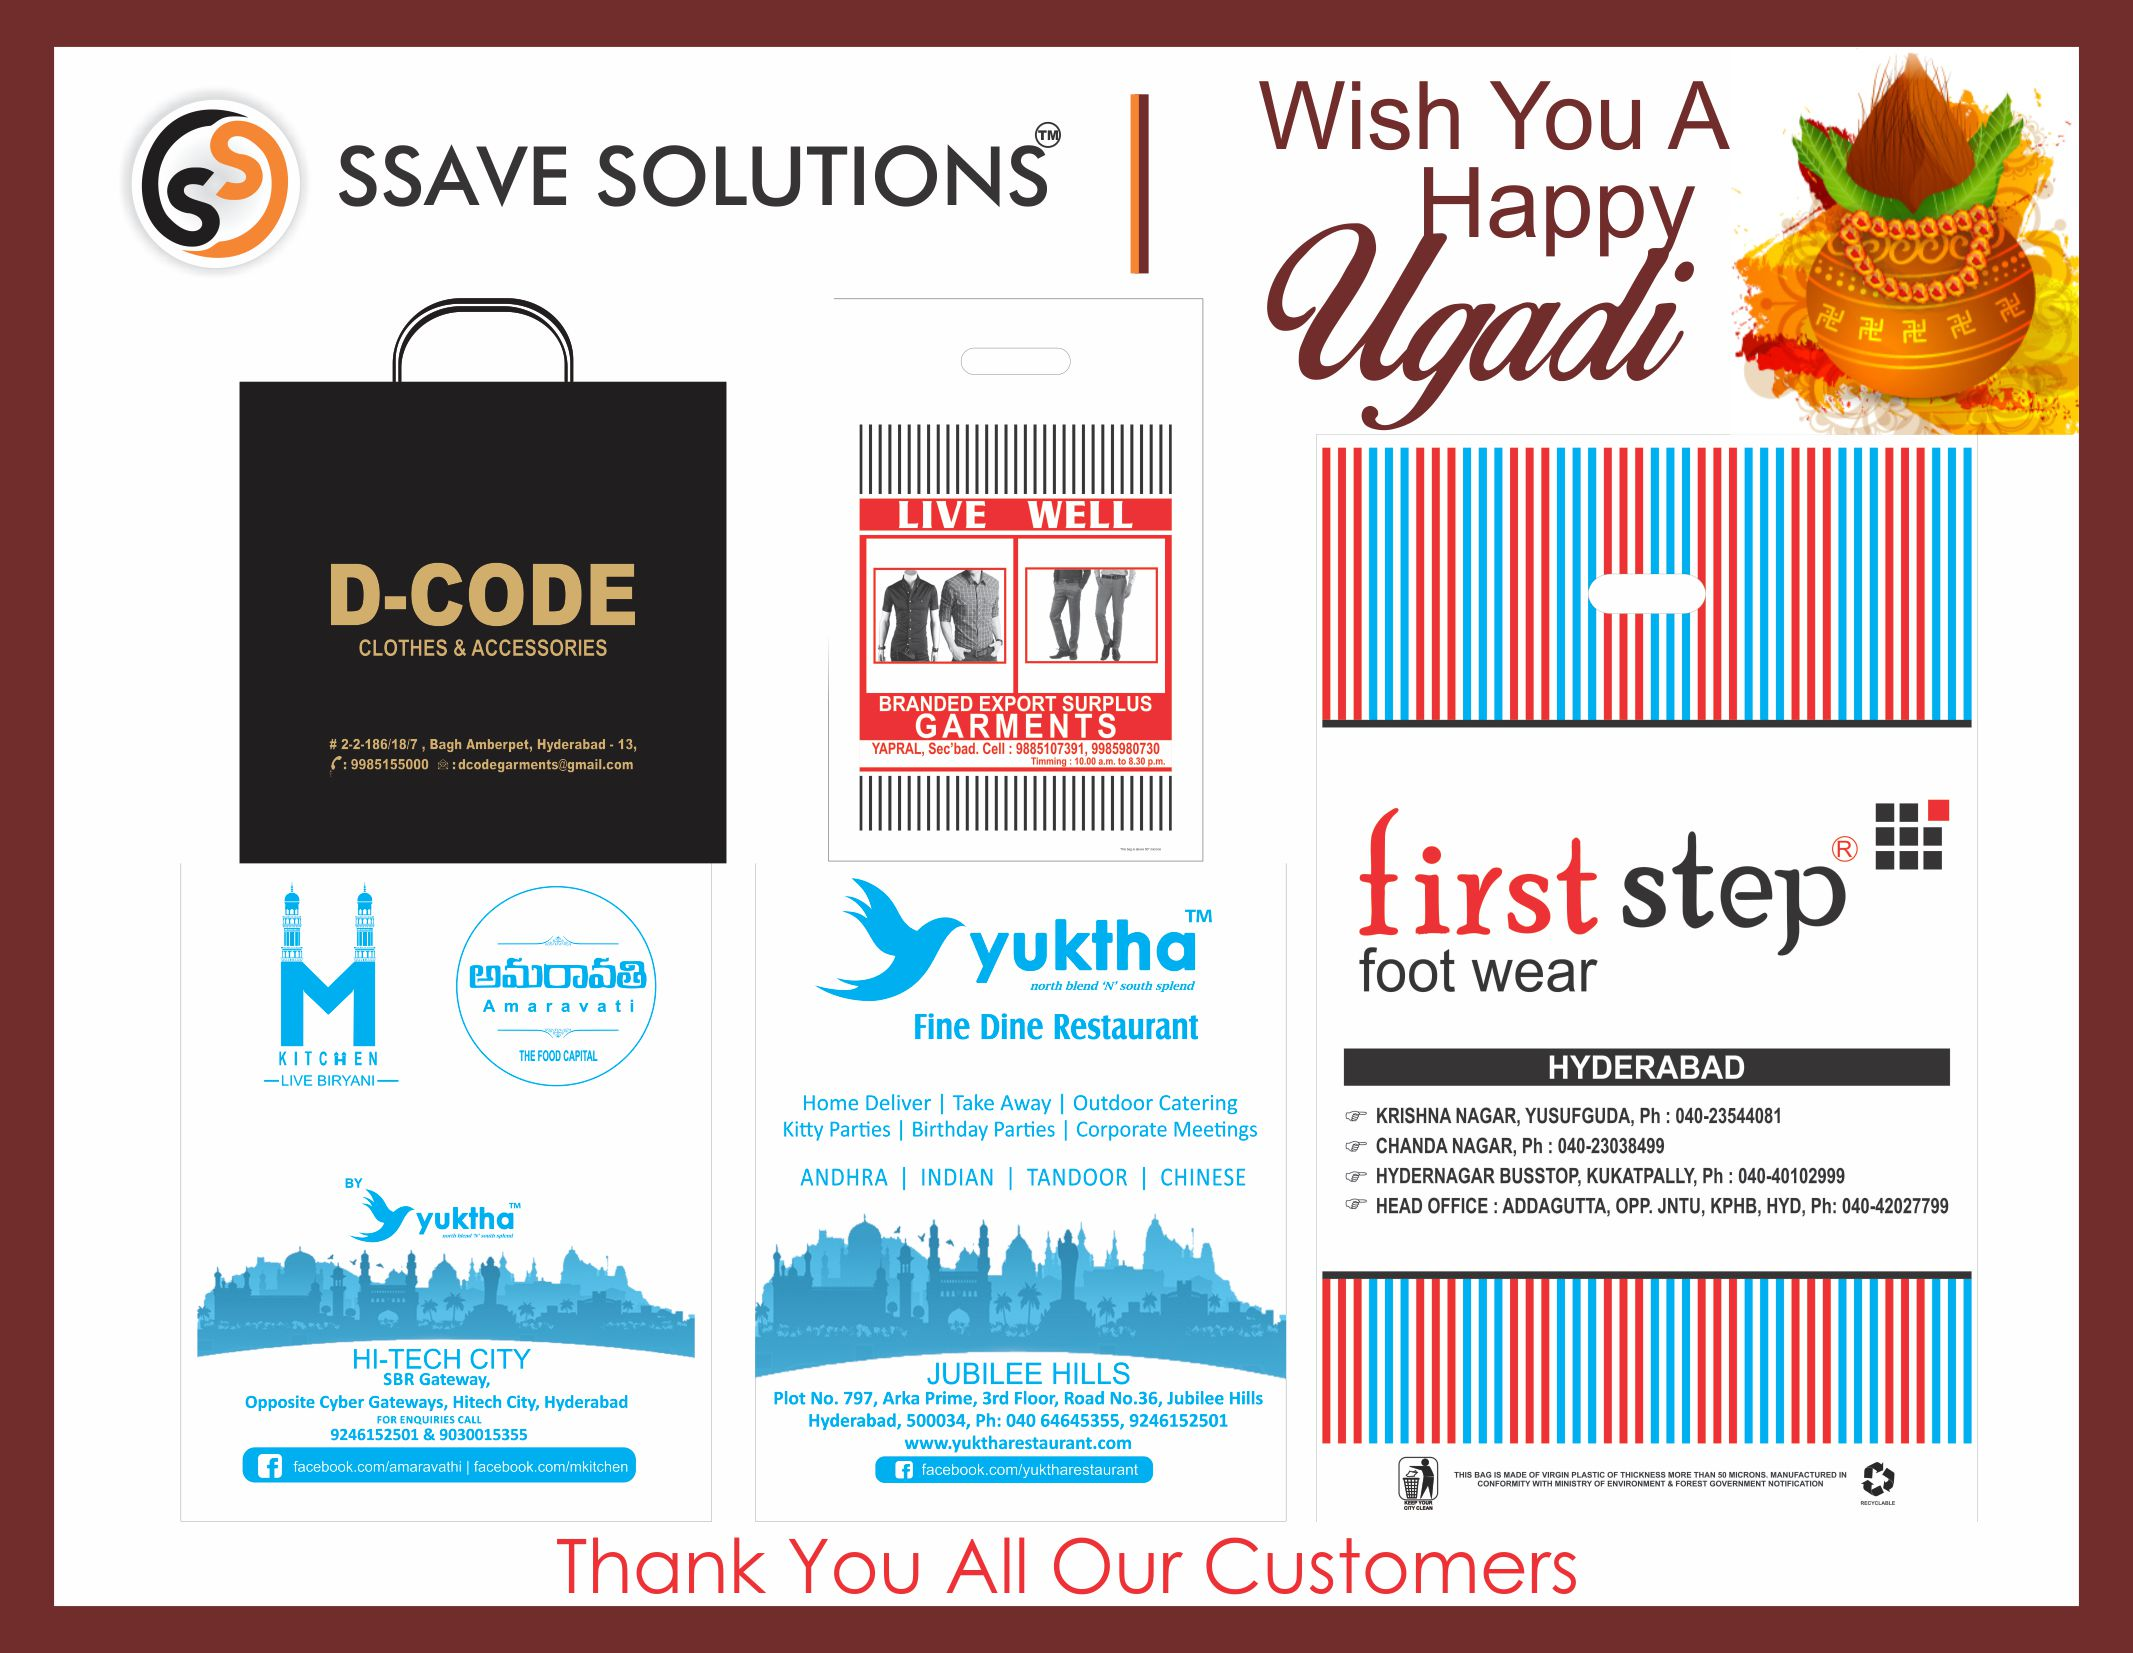 Happy Ugadi & Seasons greetings to all our customers. Hope to see you all in the coming new year also.